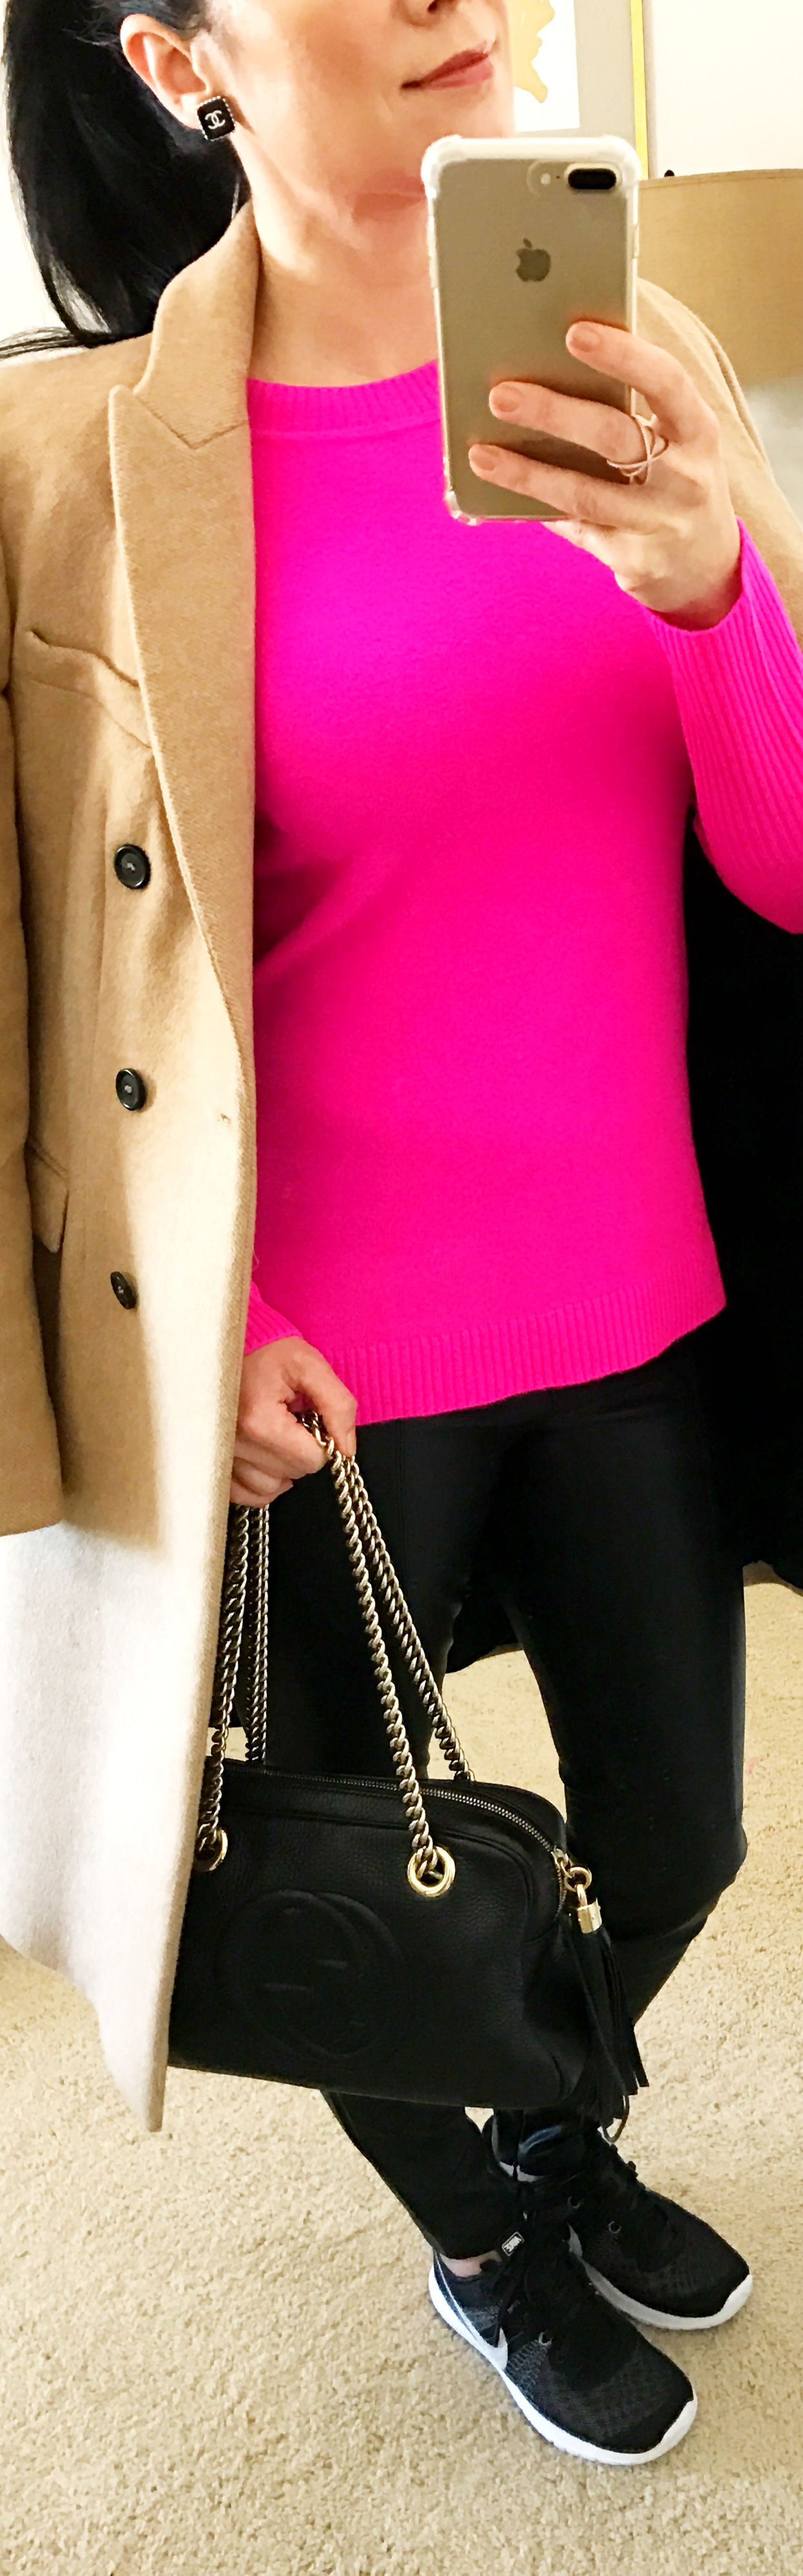 December 2, Cashmere Hot Pink Sweater with Faux Leather Pants and Nikes